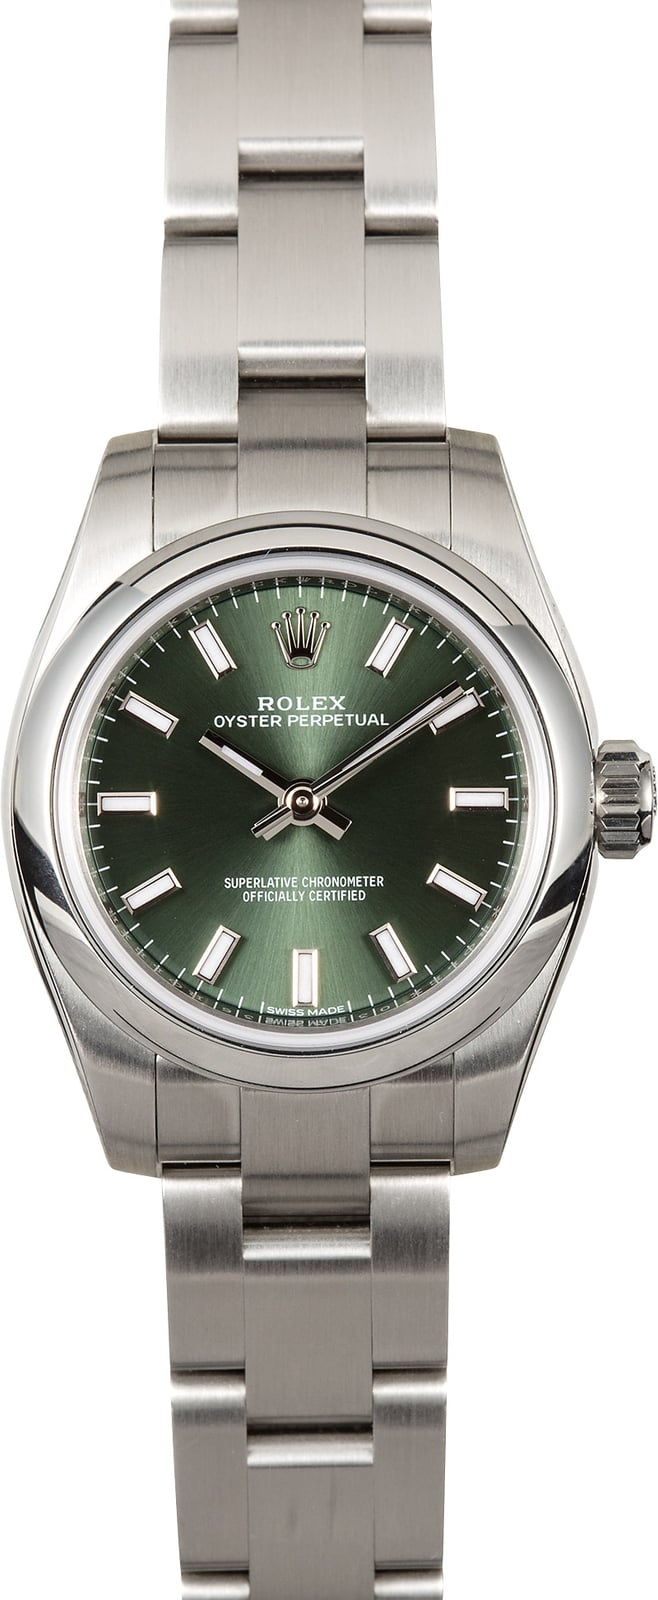 ladies-rolex rolex-lady-oyster-perpetual-176200-olive-green e495936e99